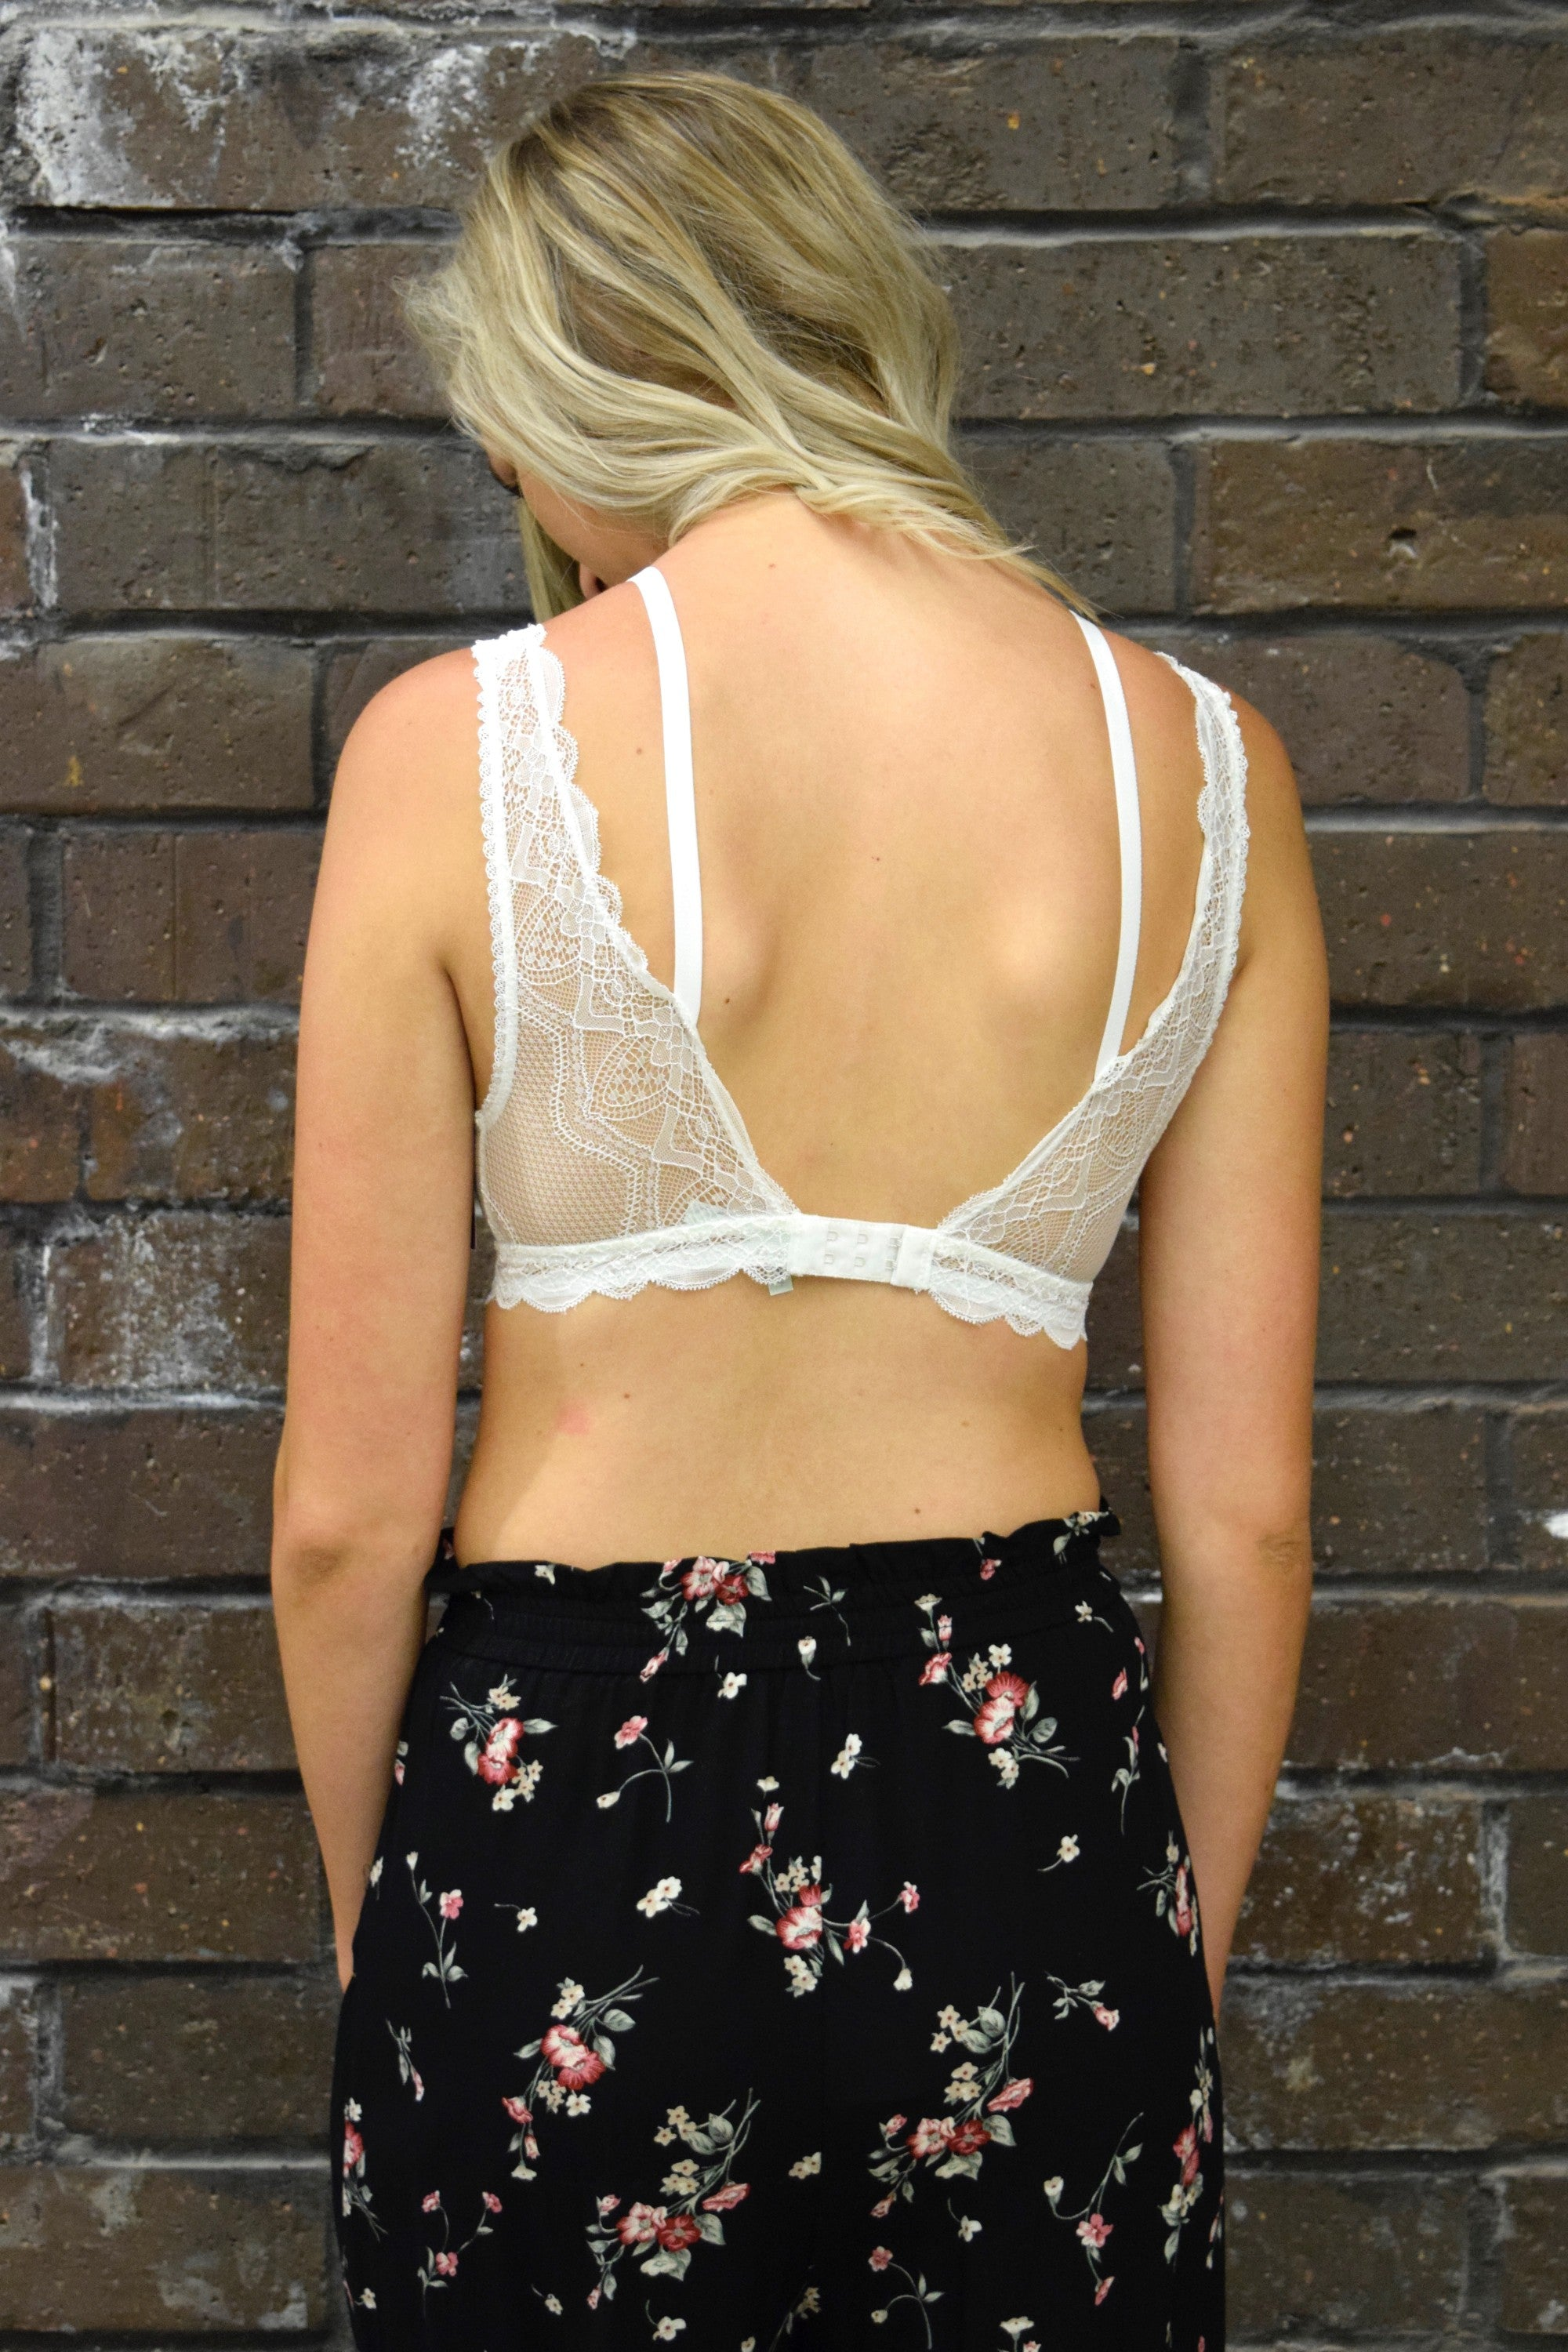 DOUBLE LAYER LACE BRALETTE: WHITE